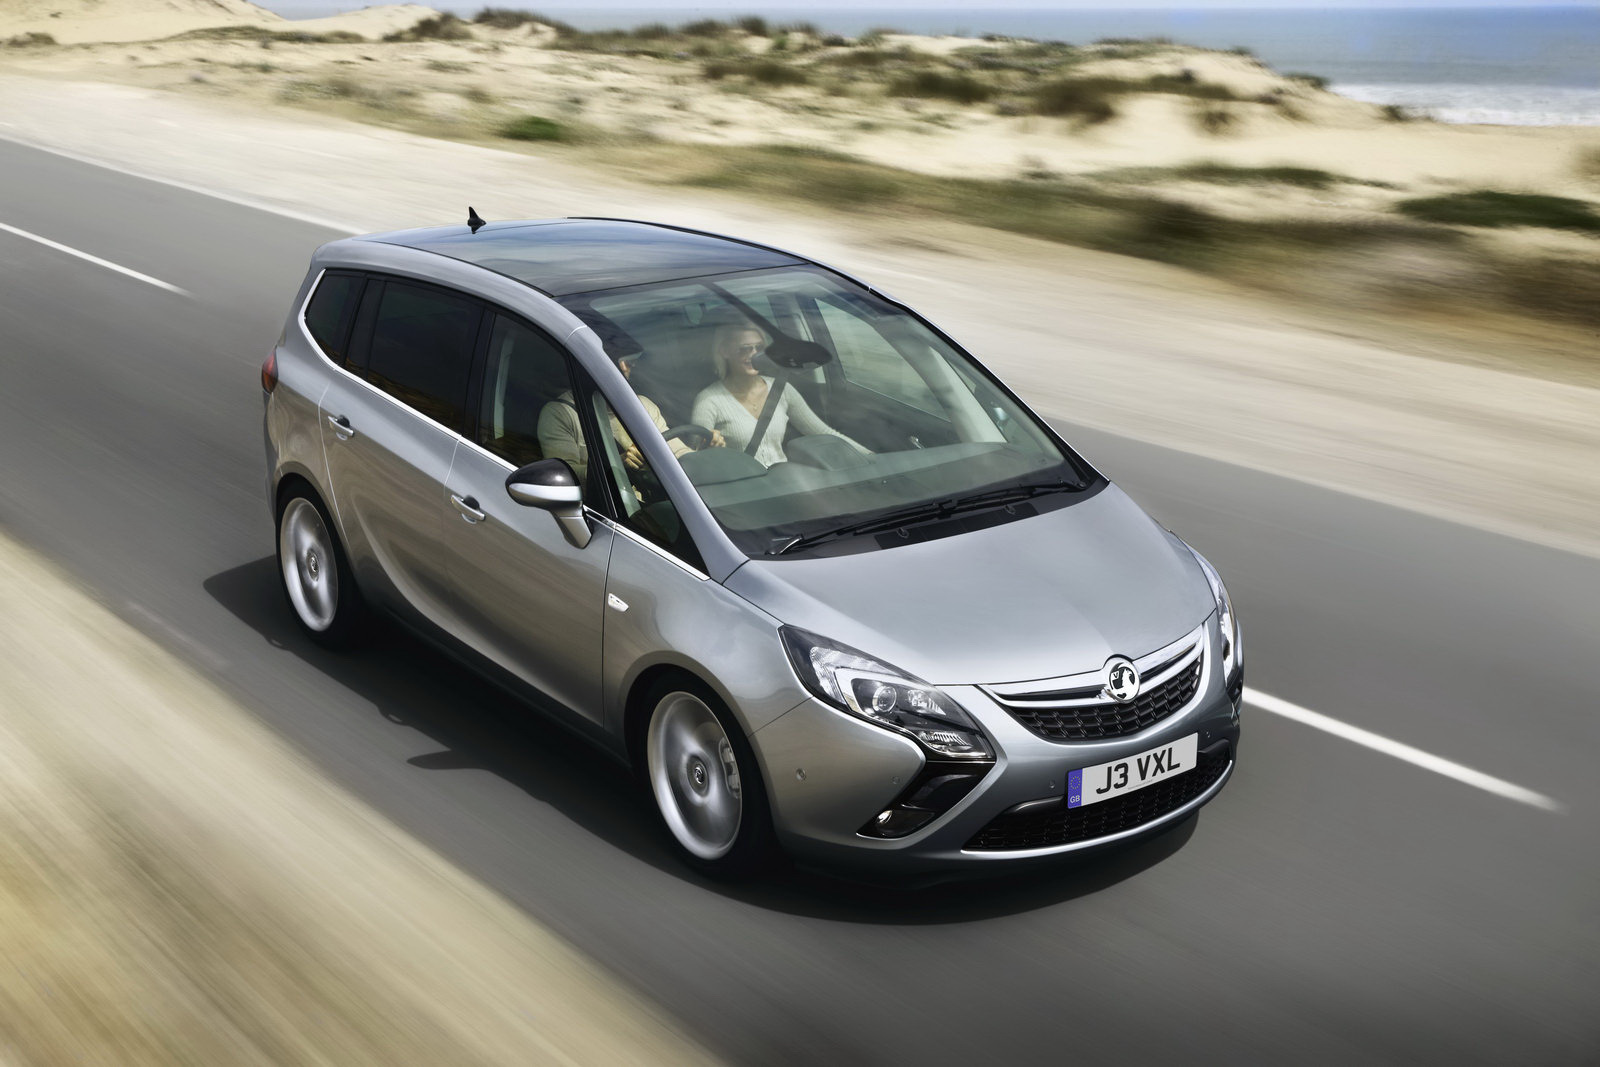 creation blogs all new 2012 opel zafira 7 seater. Black Bedroom Furniture Sets. Home Design Ideas